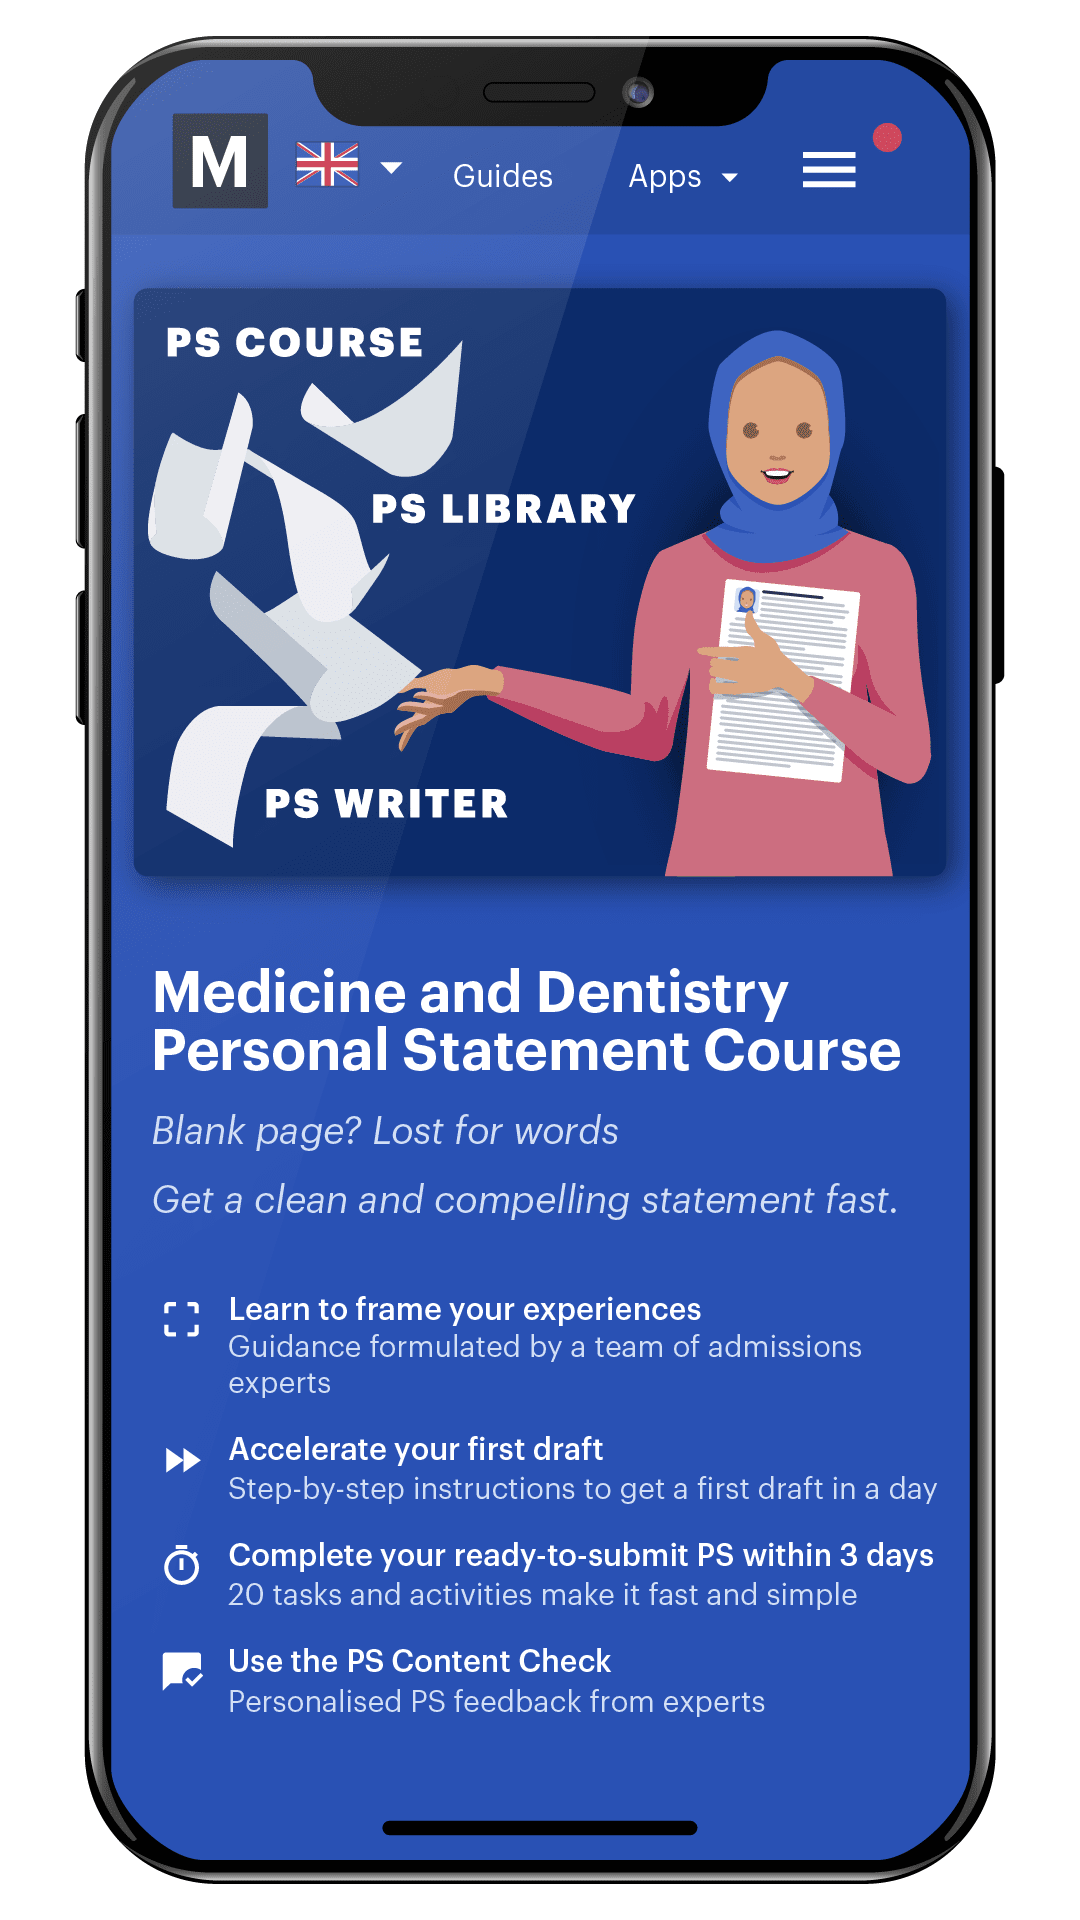 Medify's Medicine and Dentistry Personal Statement Course on mobile phone